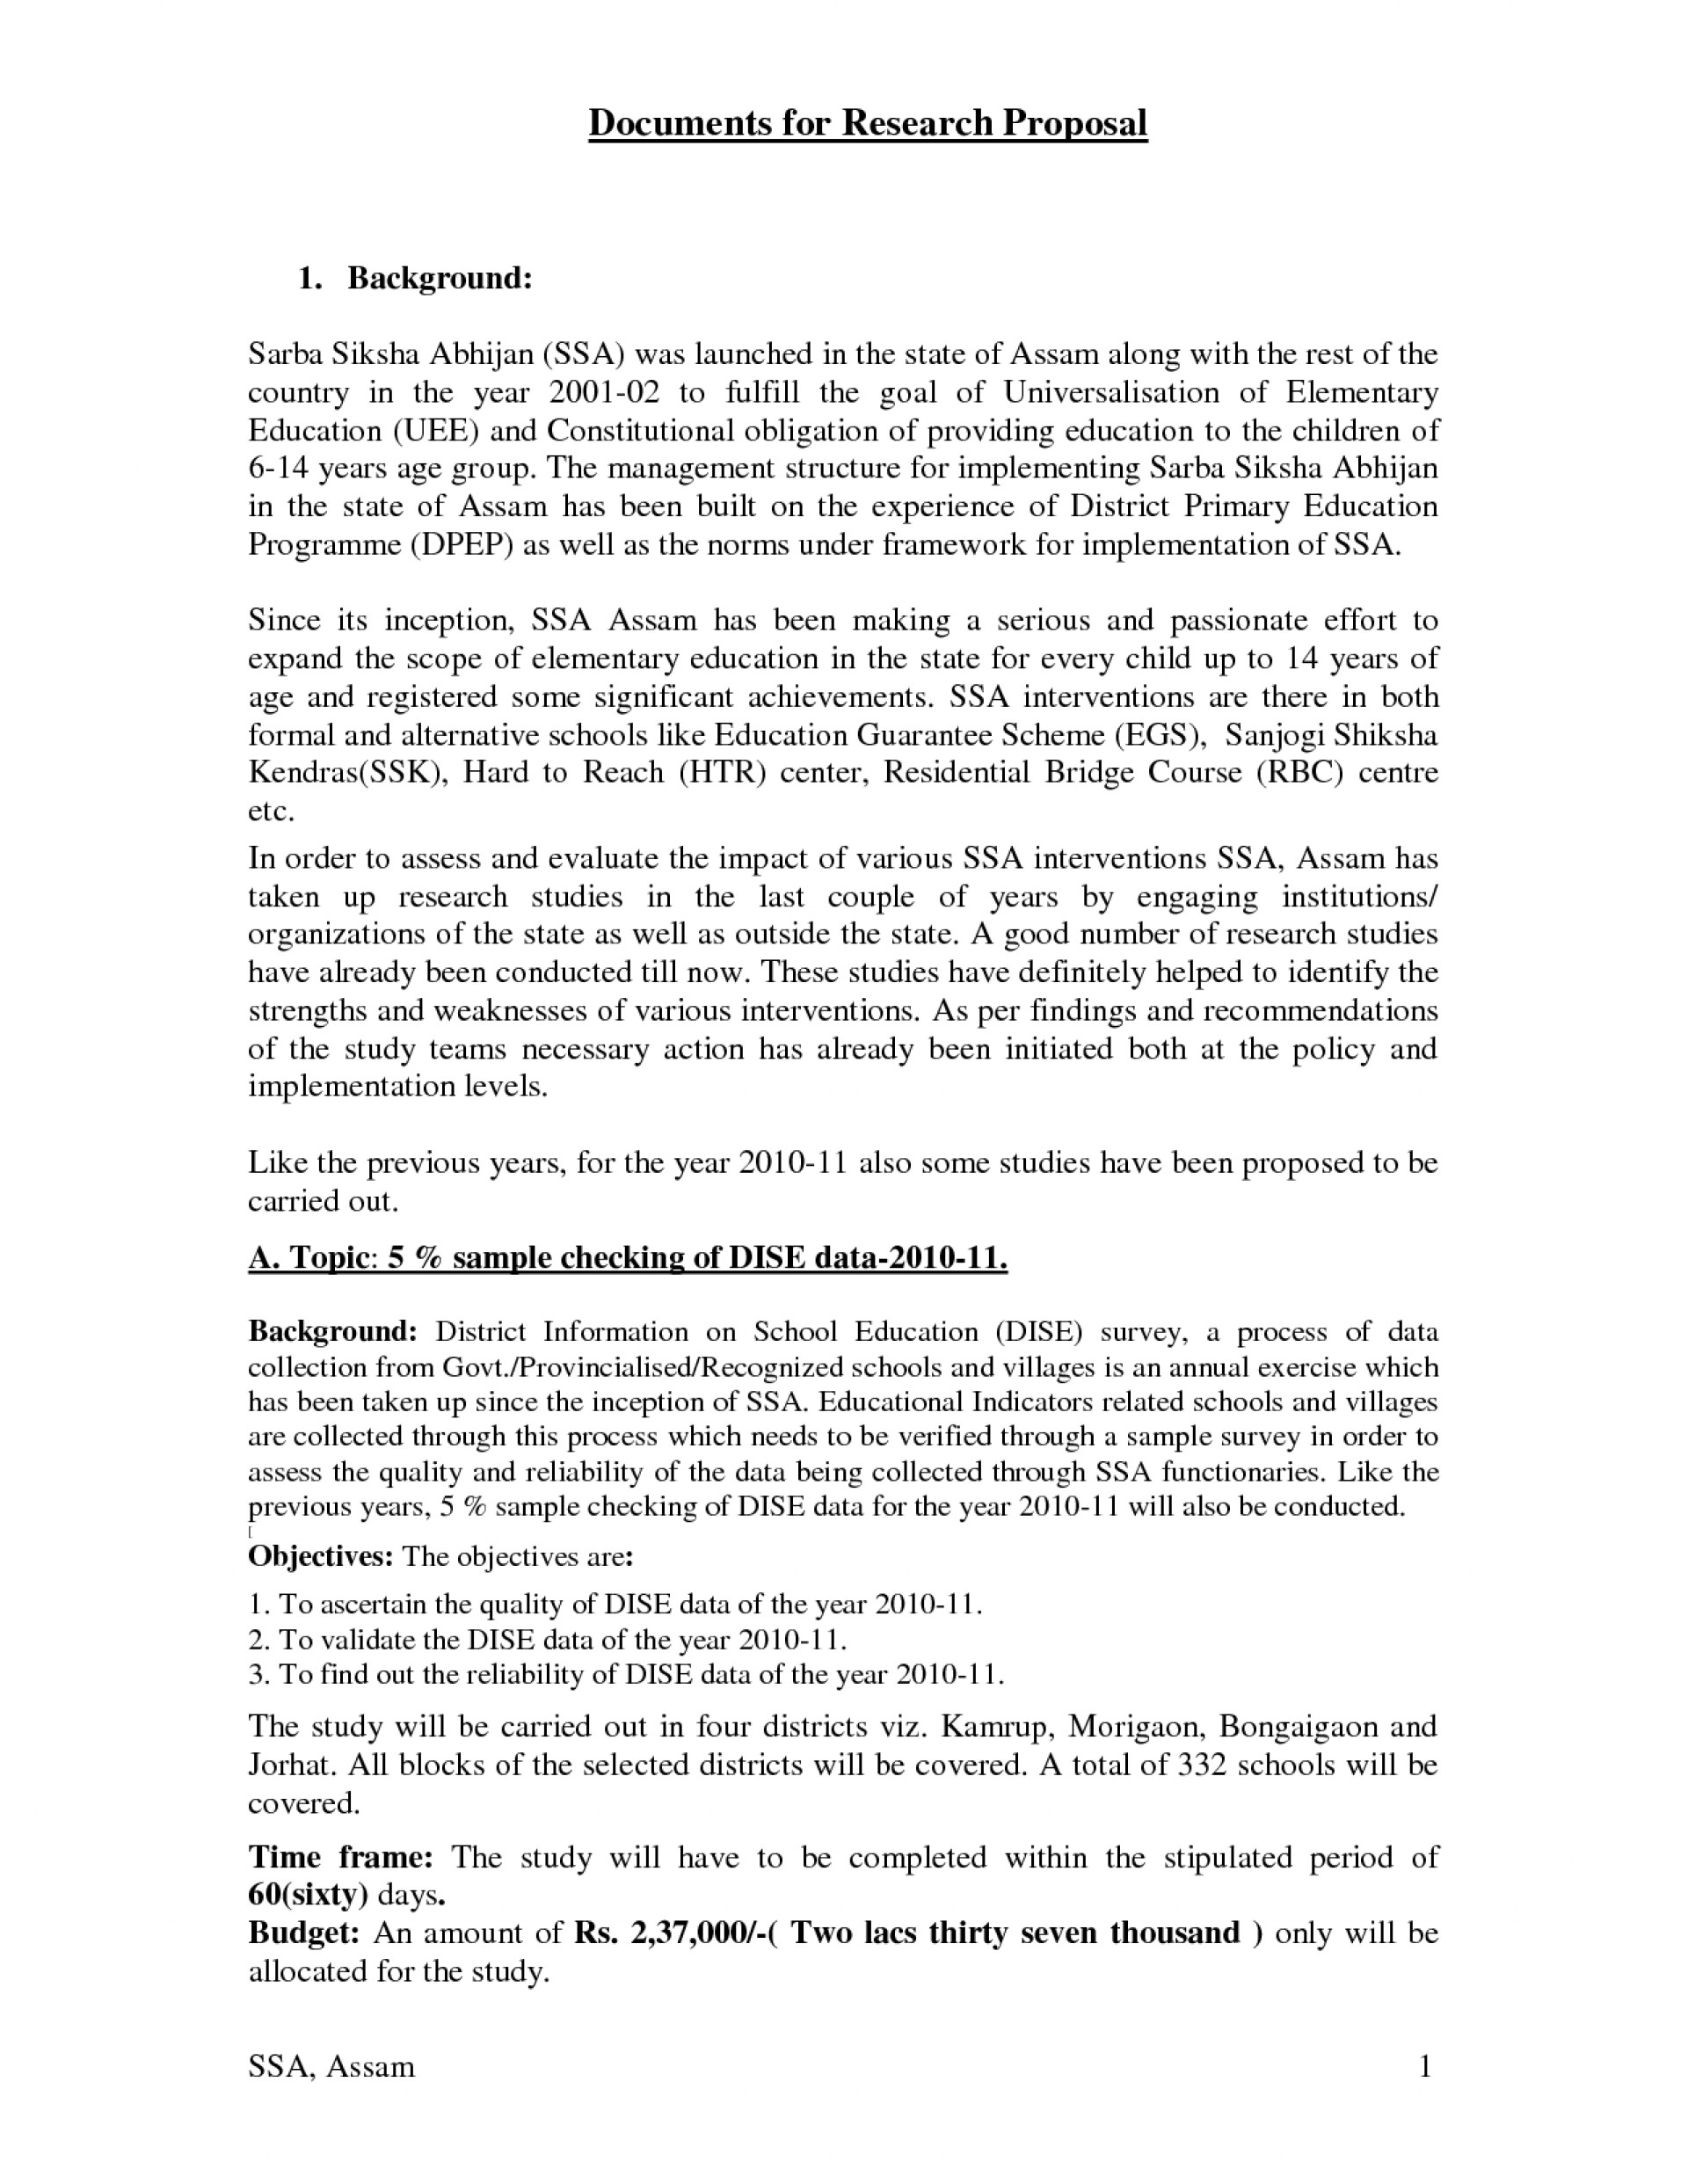 006 Research Topic Proposal Sample 501313 Example Wonderful Paper Template Write 5 Of A 1920